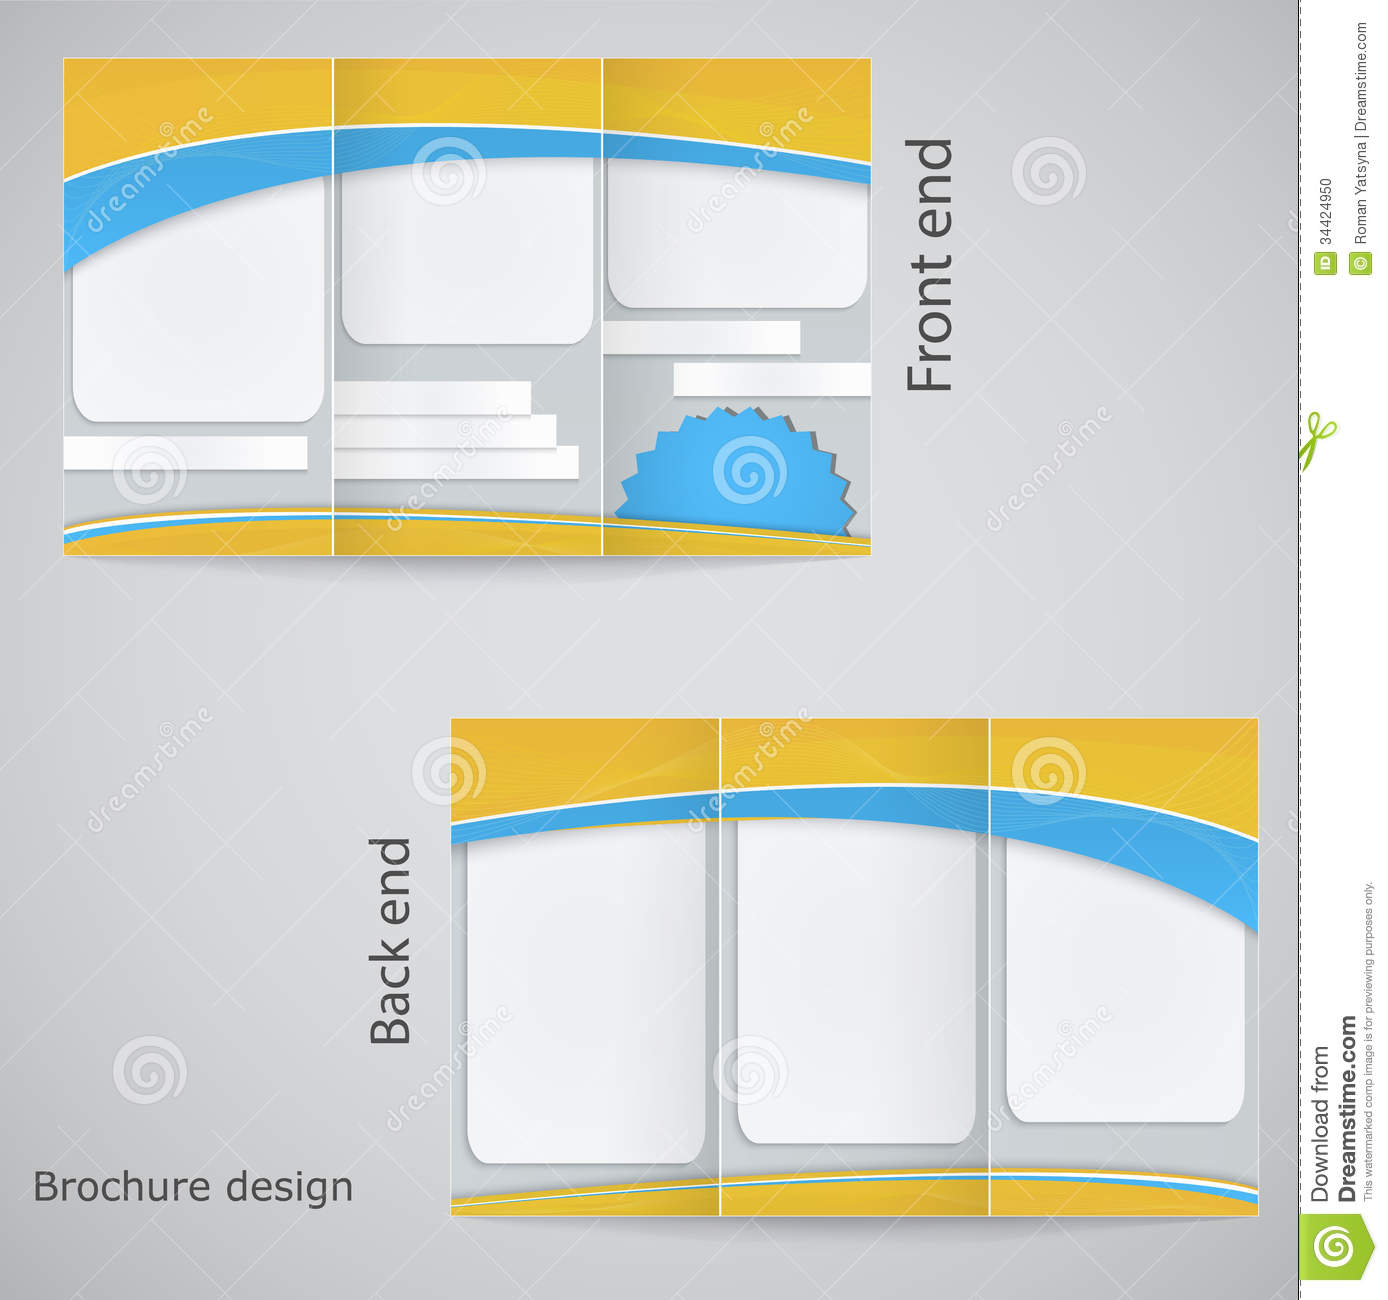 Tri fold brochure design stock vector image of branding for Tri fold brochure design templates